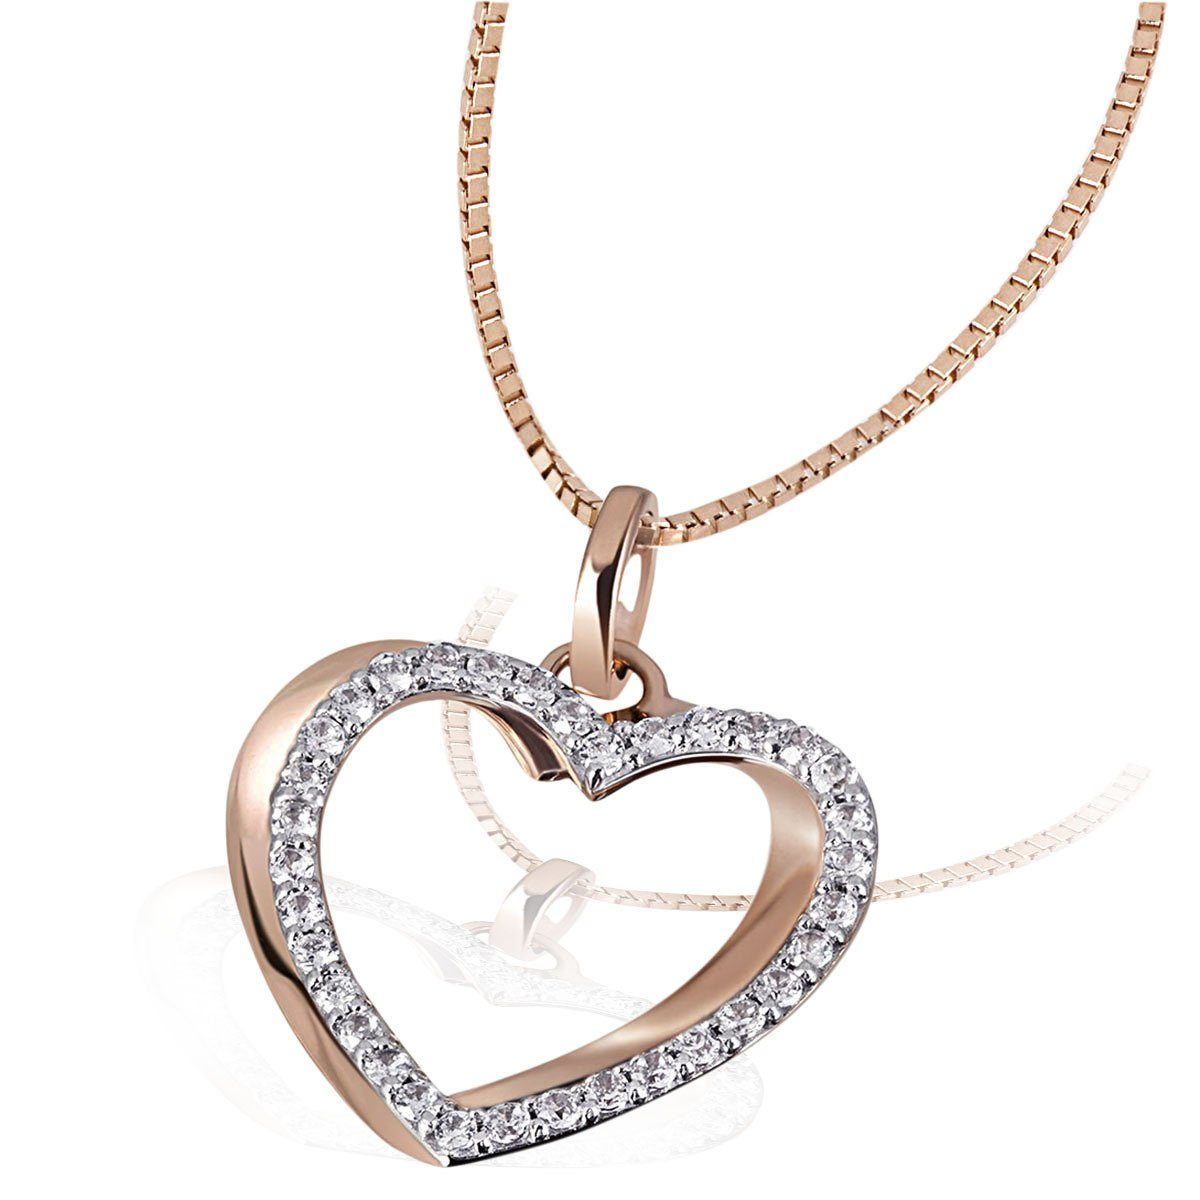 goldmaid Collier Heart 585 Rotgold 34 Diamanten 0,23 ct. P2/H